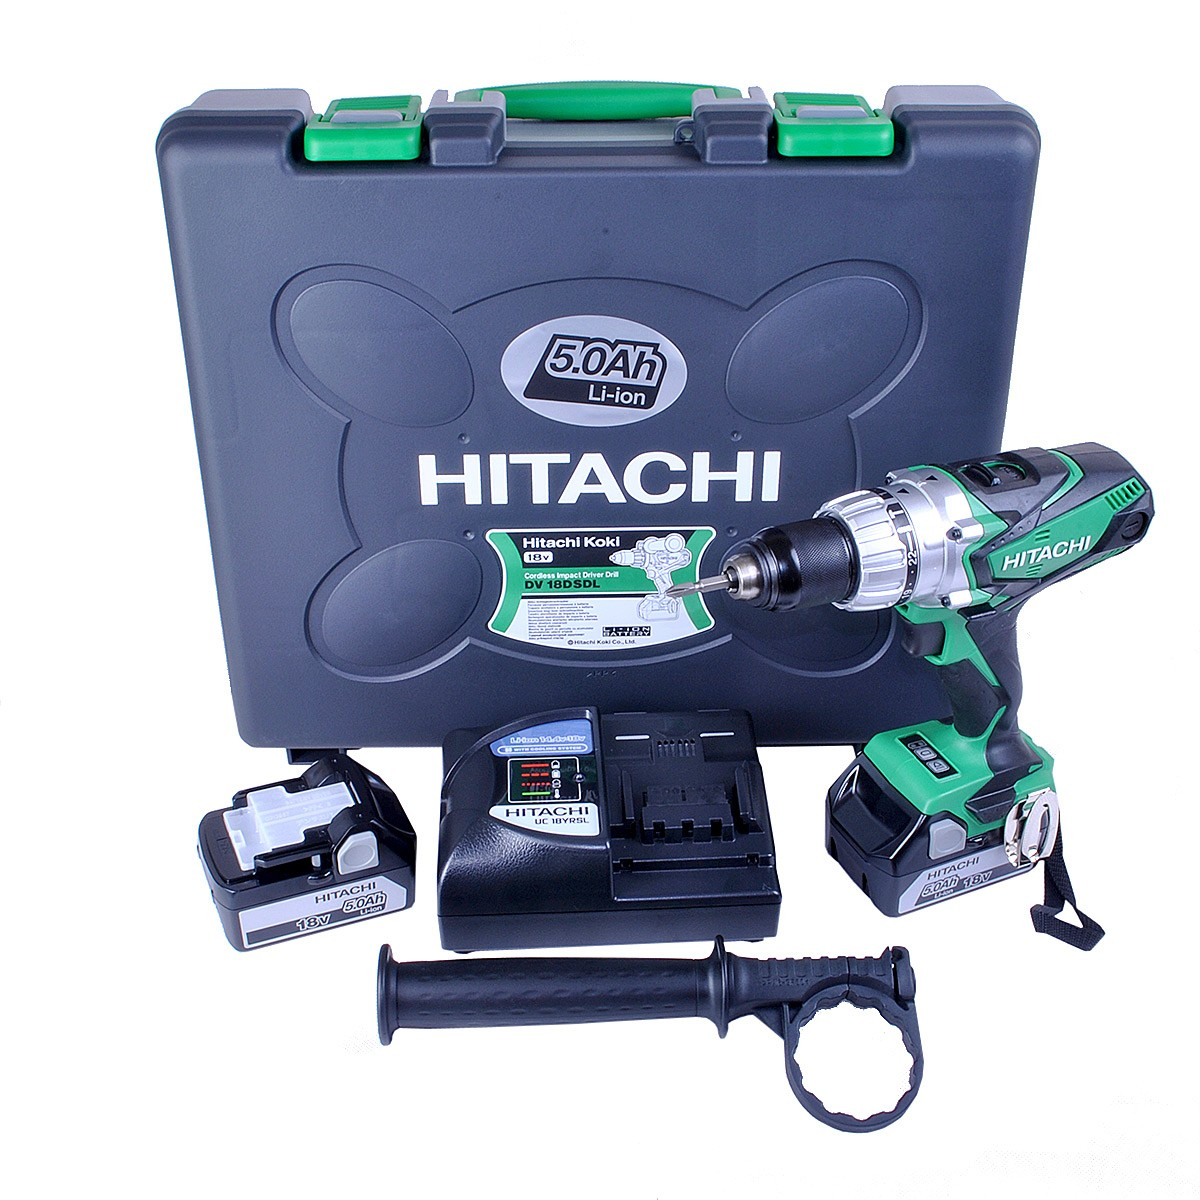 Hitachi DV18DSDL/JJ 18v Cordless Combi Drill inc 2x 5.0Ah Li-ion Batteries in Carry Case